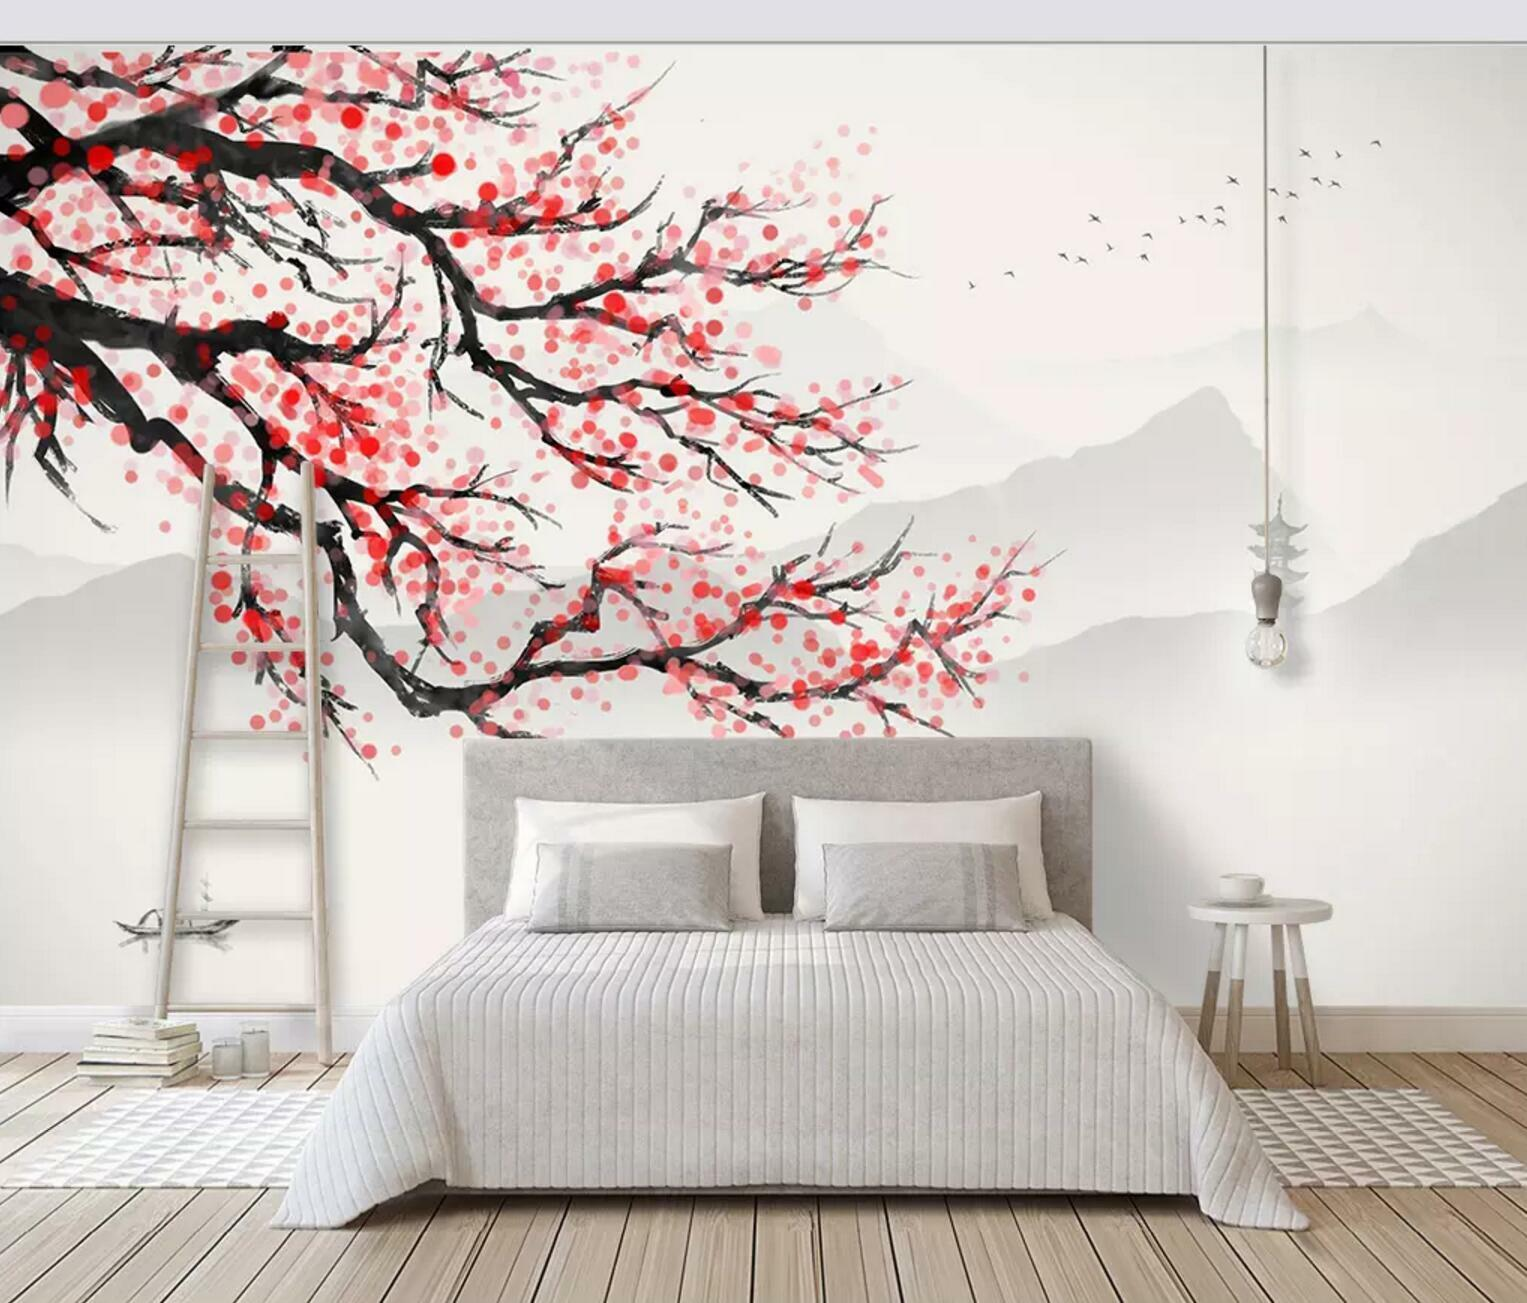 3D ROT Scape grau 783 Wall Paper Exclusive MXY Wallpaper Mural Decal Indoor Wall